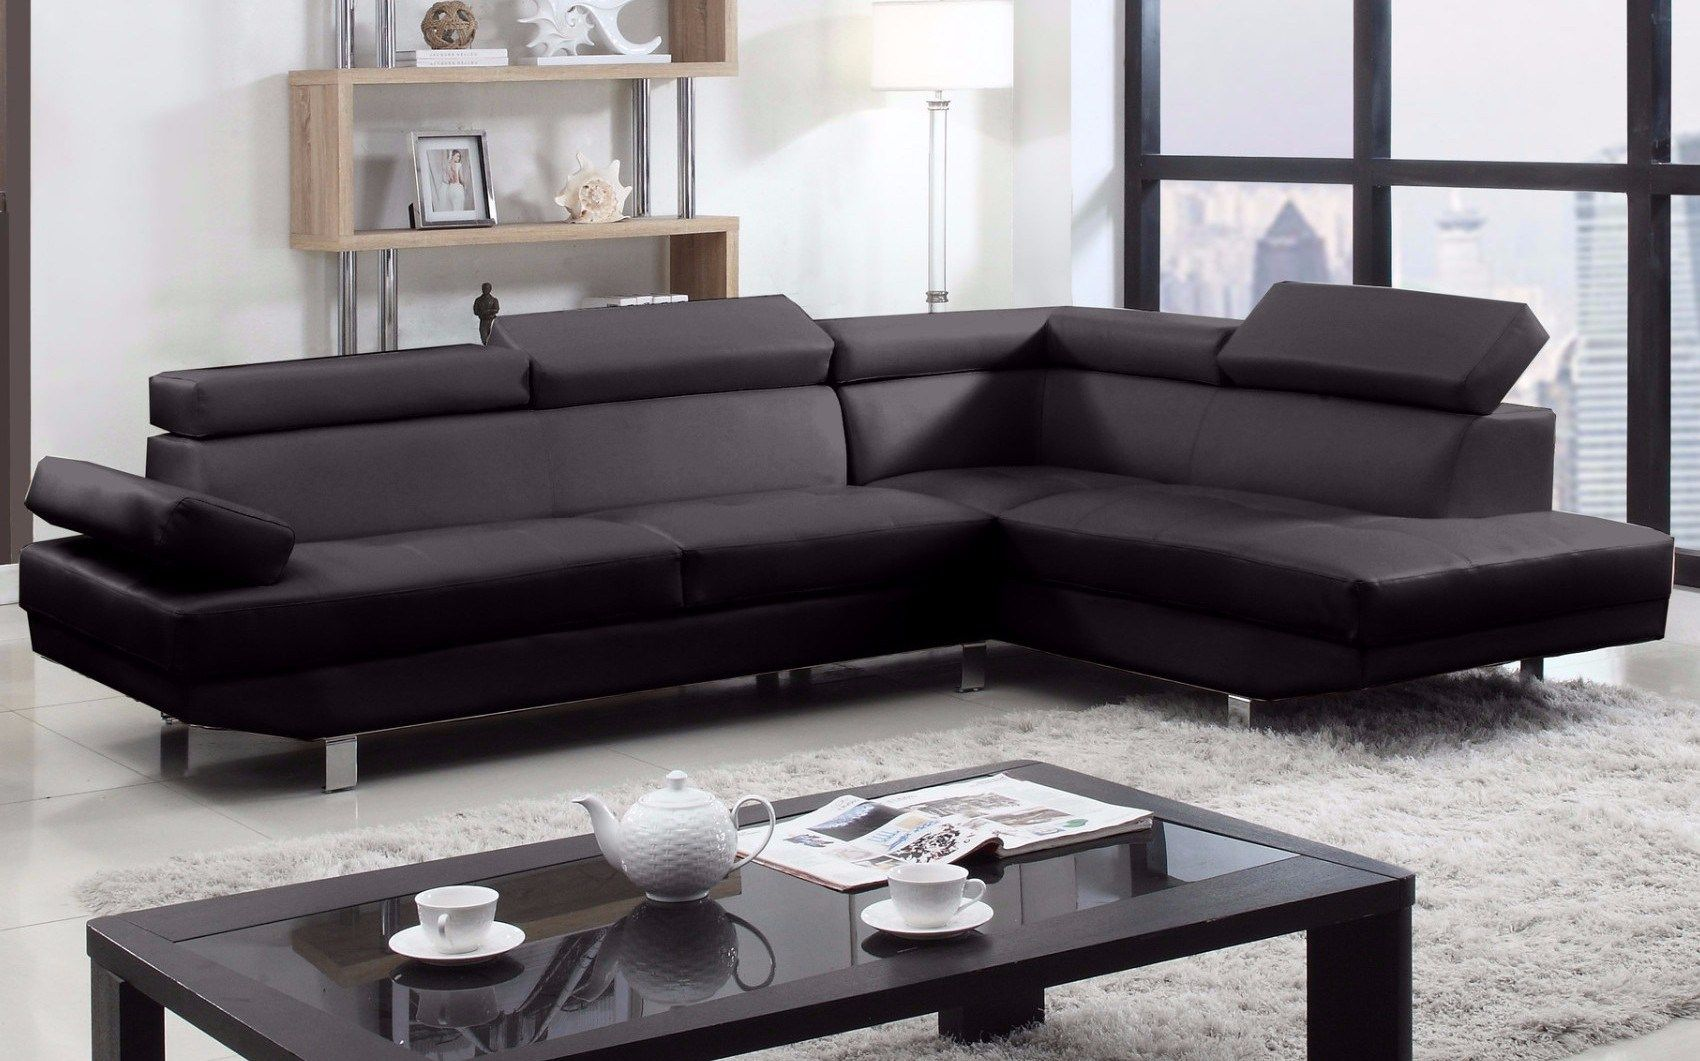 Leather Sectional Couches Living Room Best Buy Canada Piece Modern Bonded Lea Leather Couch Sectional Sectional Sofa With Chaise Modern Leather Sectional Sofas